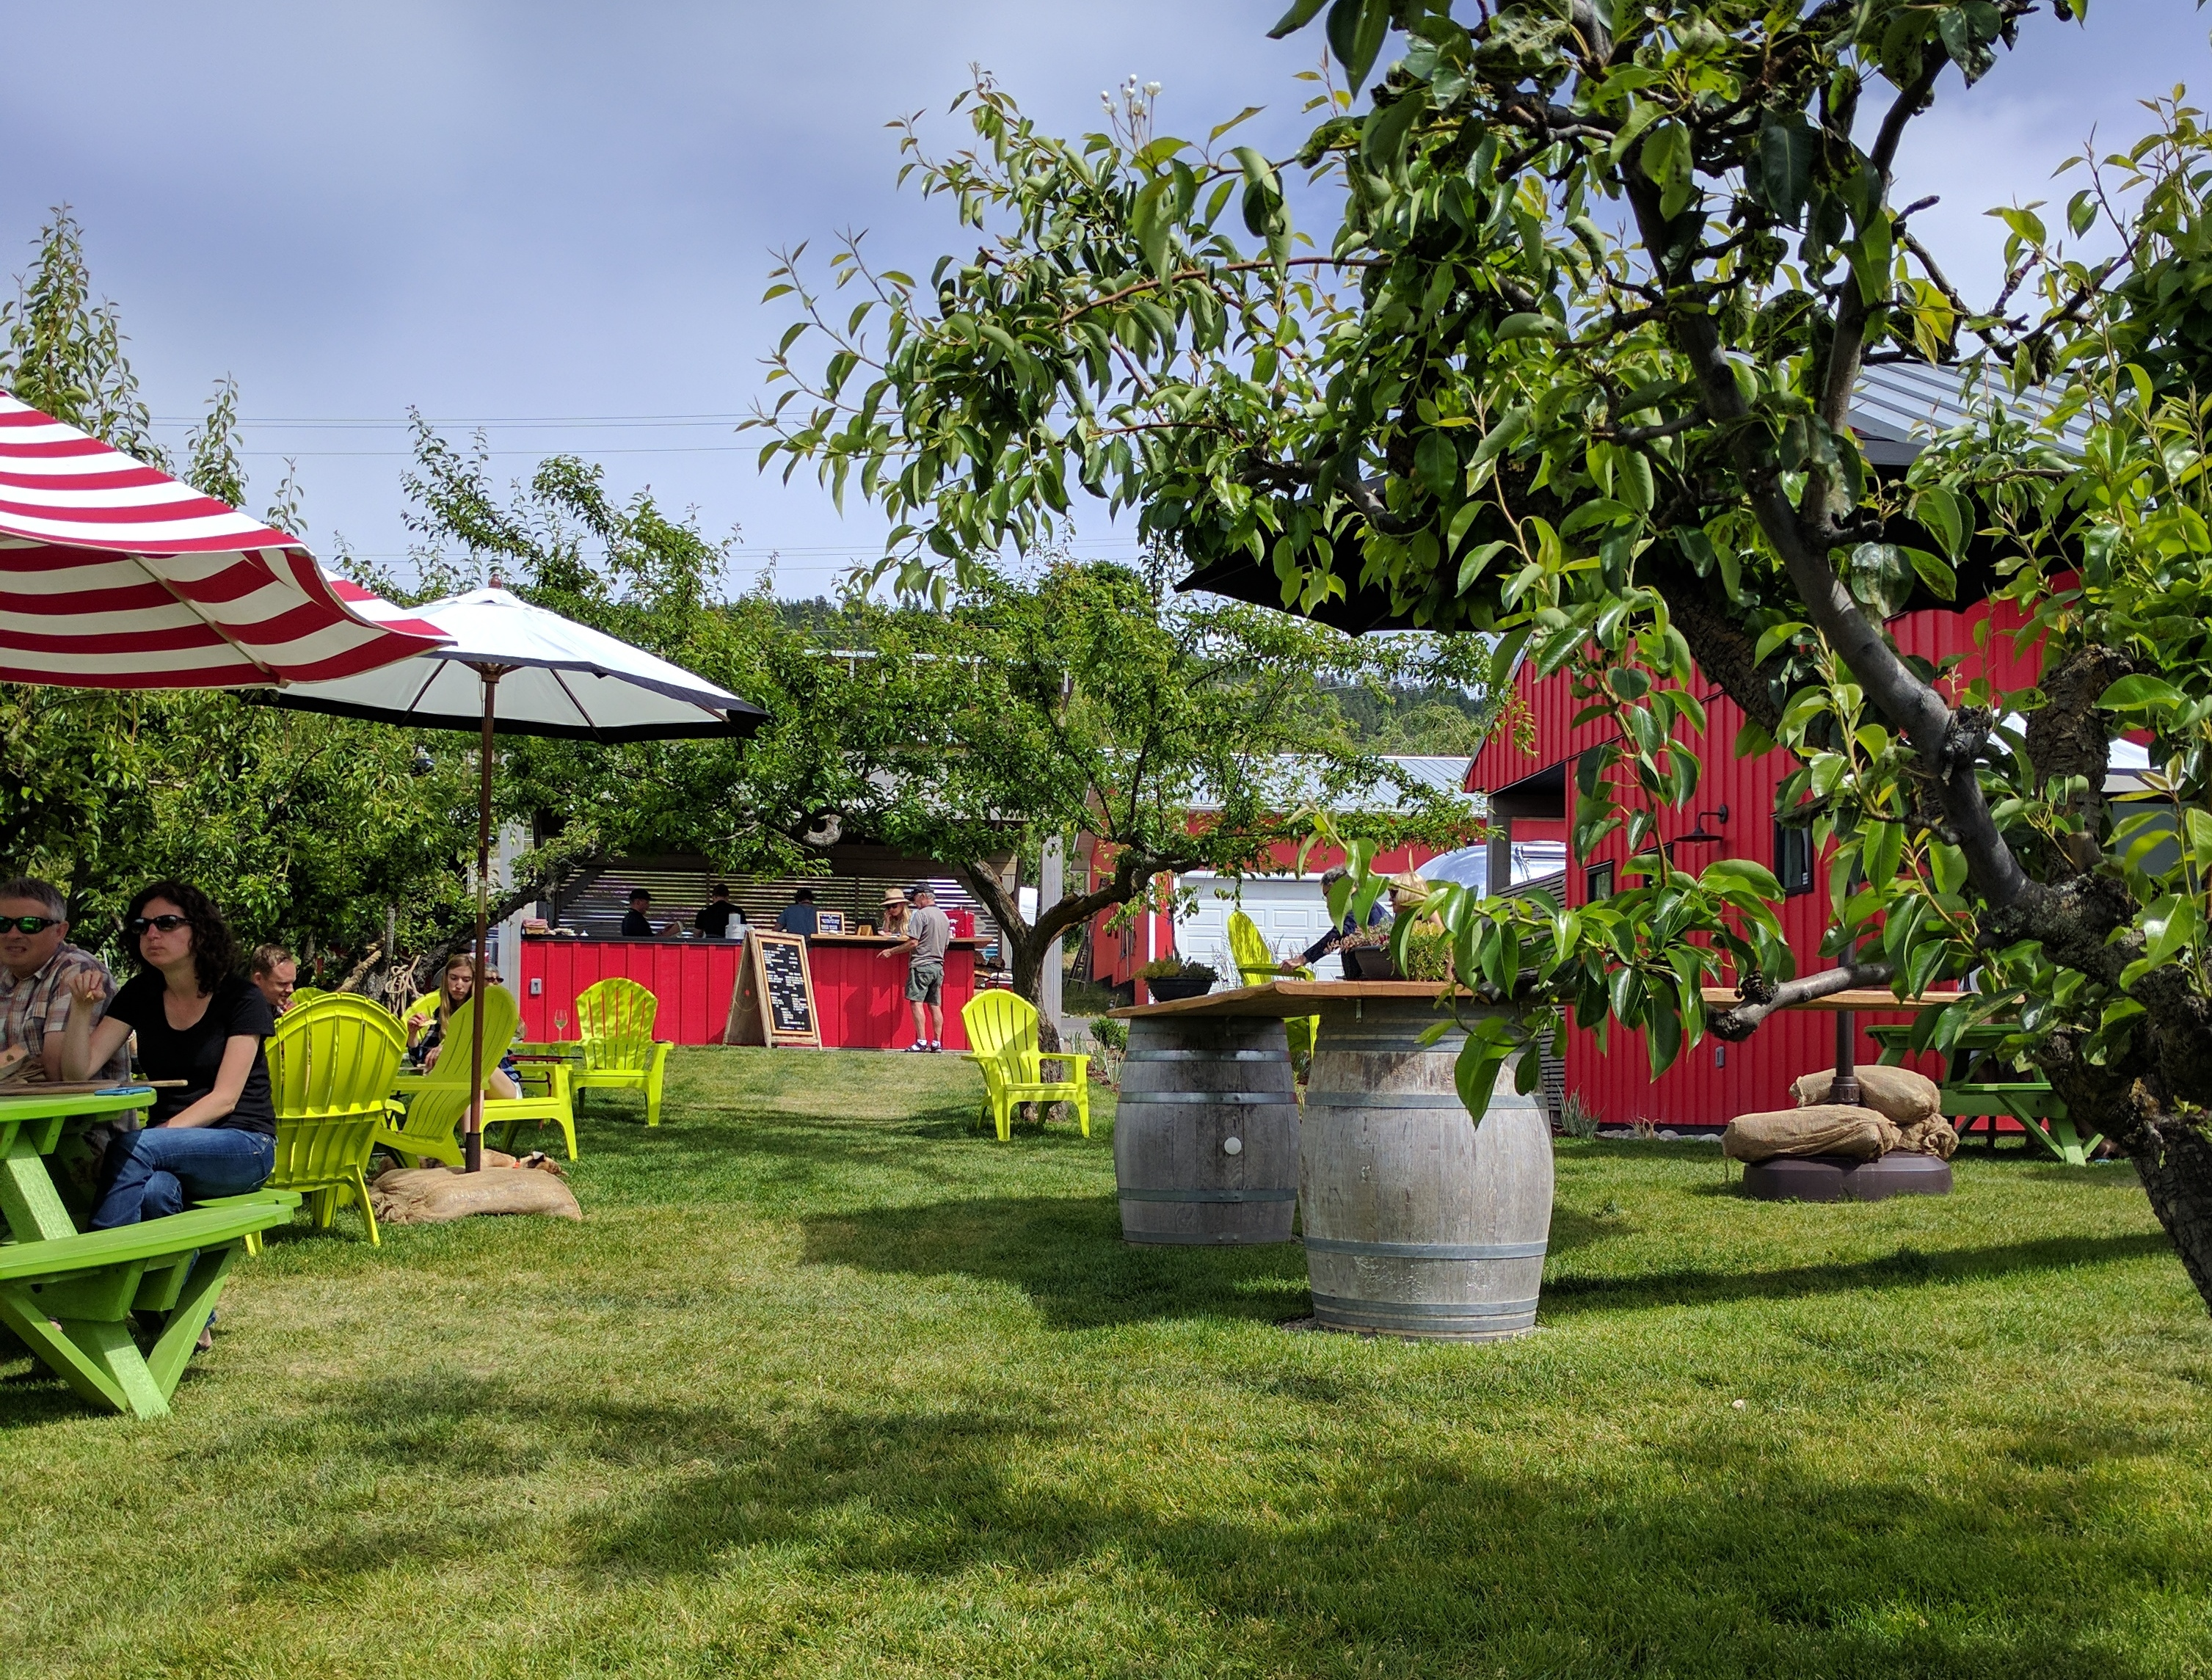 The outdoor space at Joie Piqnique